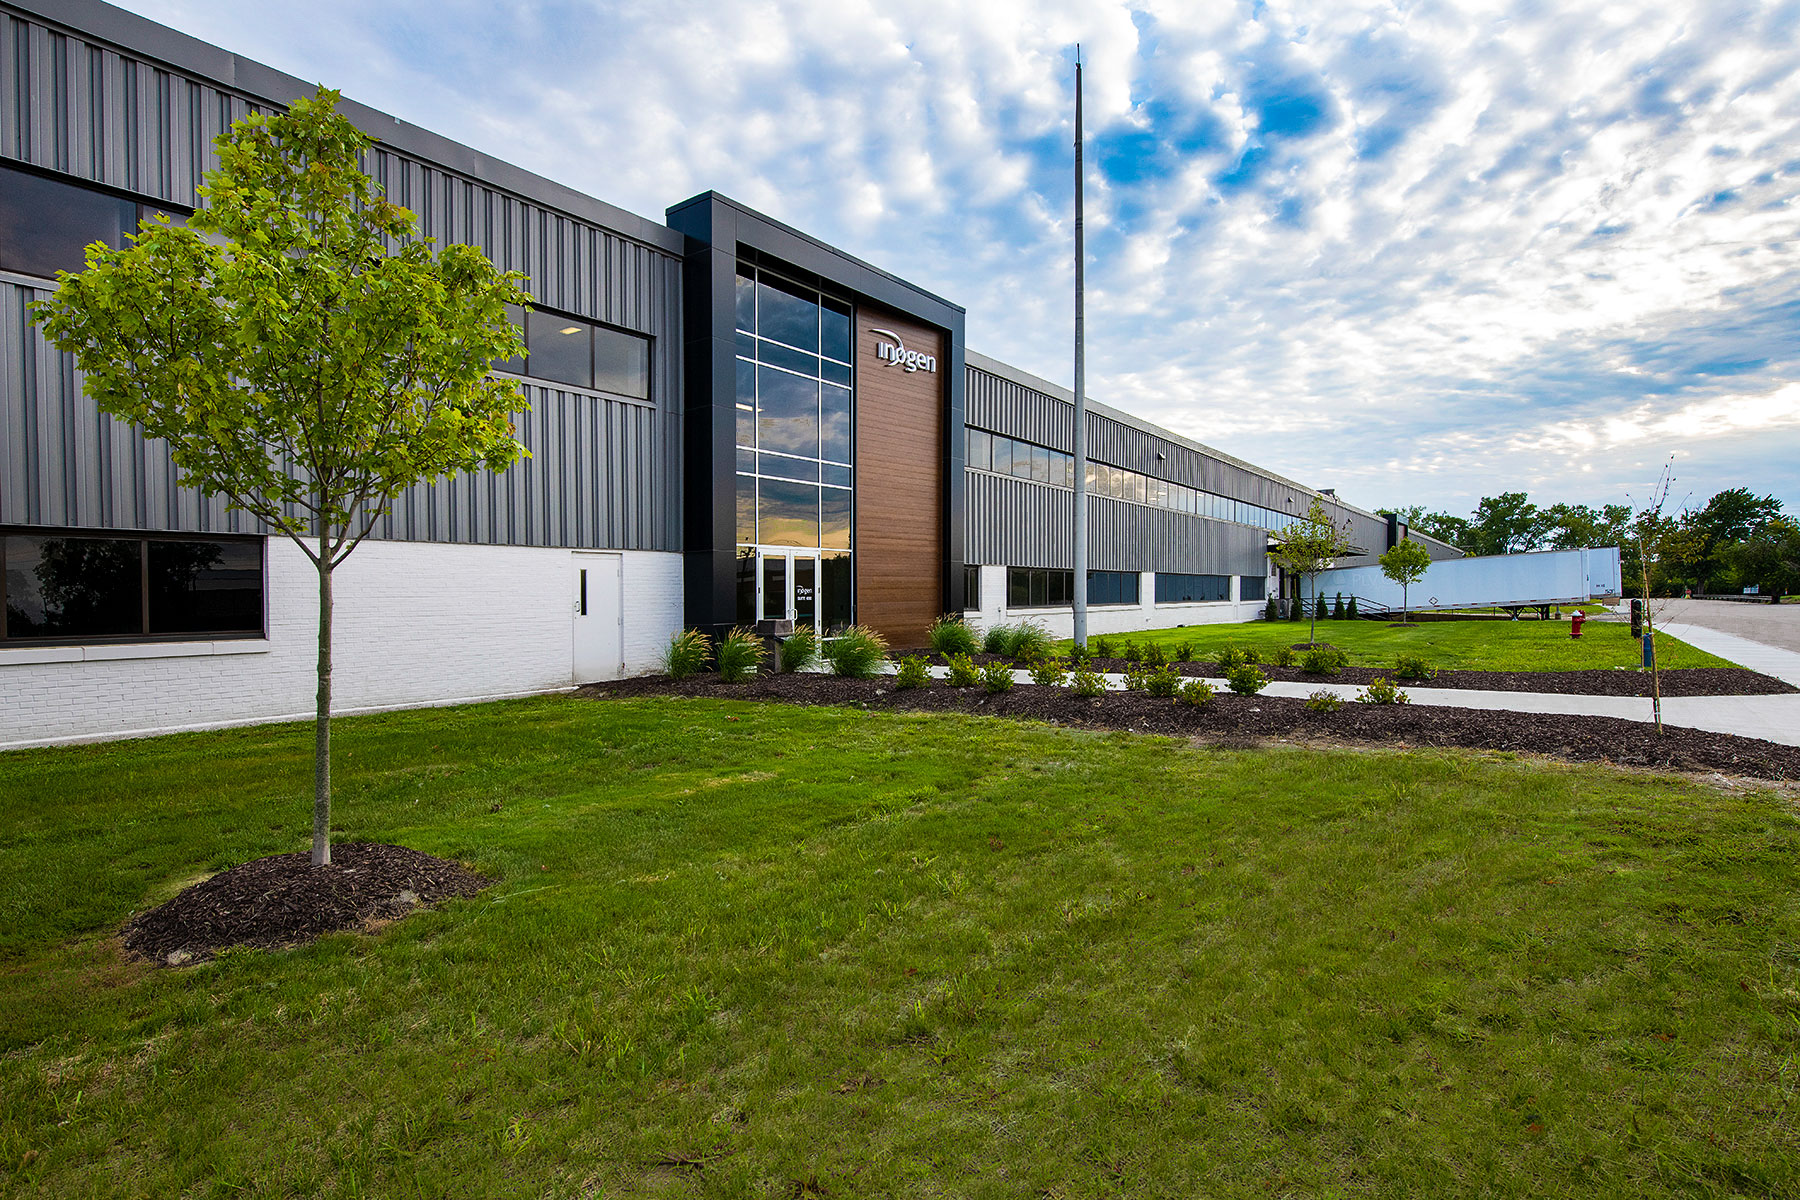 Image of property at 1 American Road Office, Brooklyn, Ohio 44144